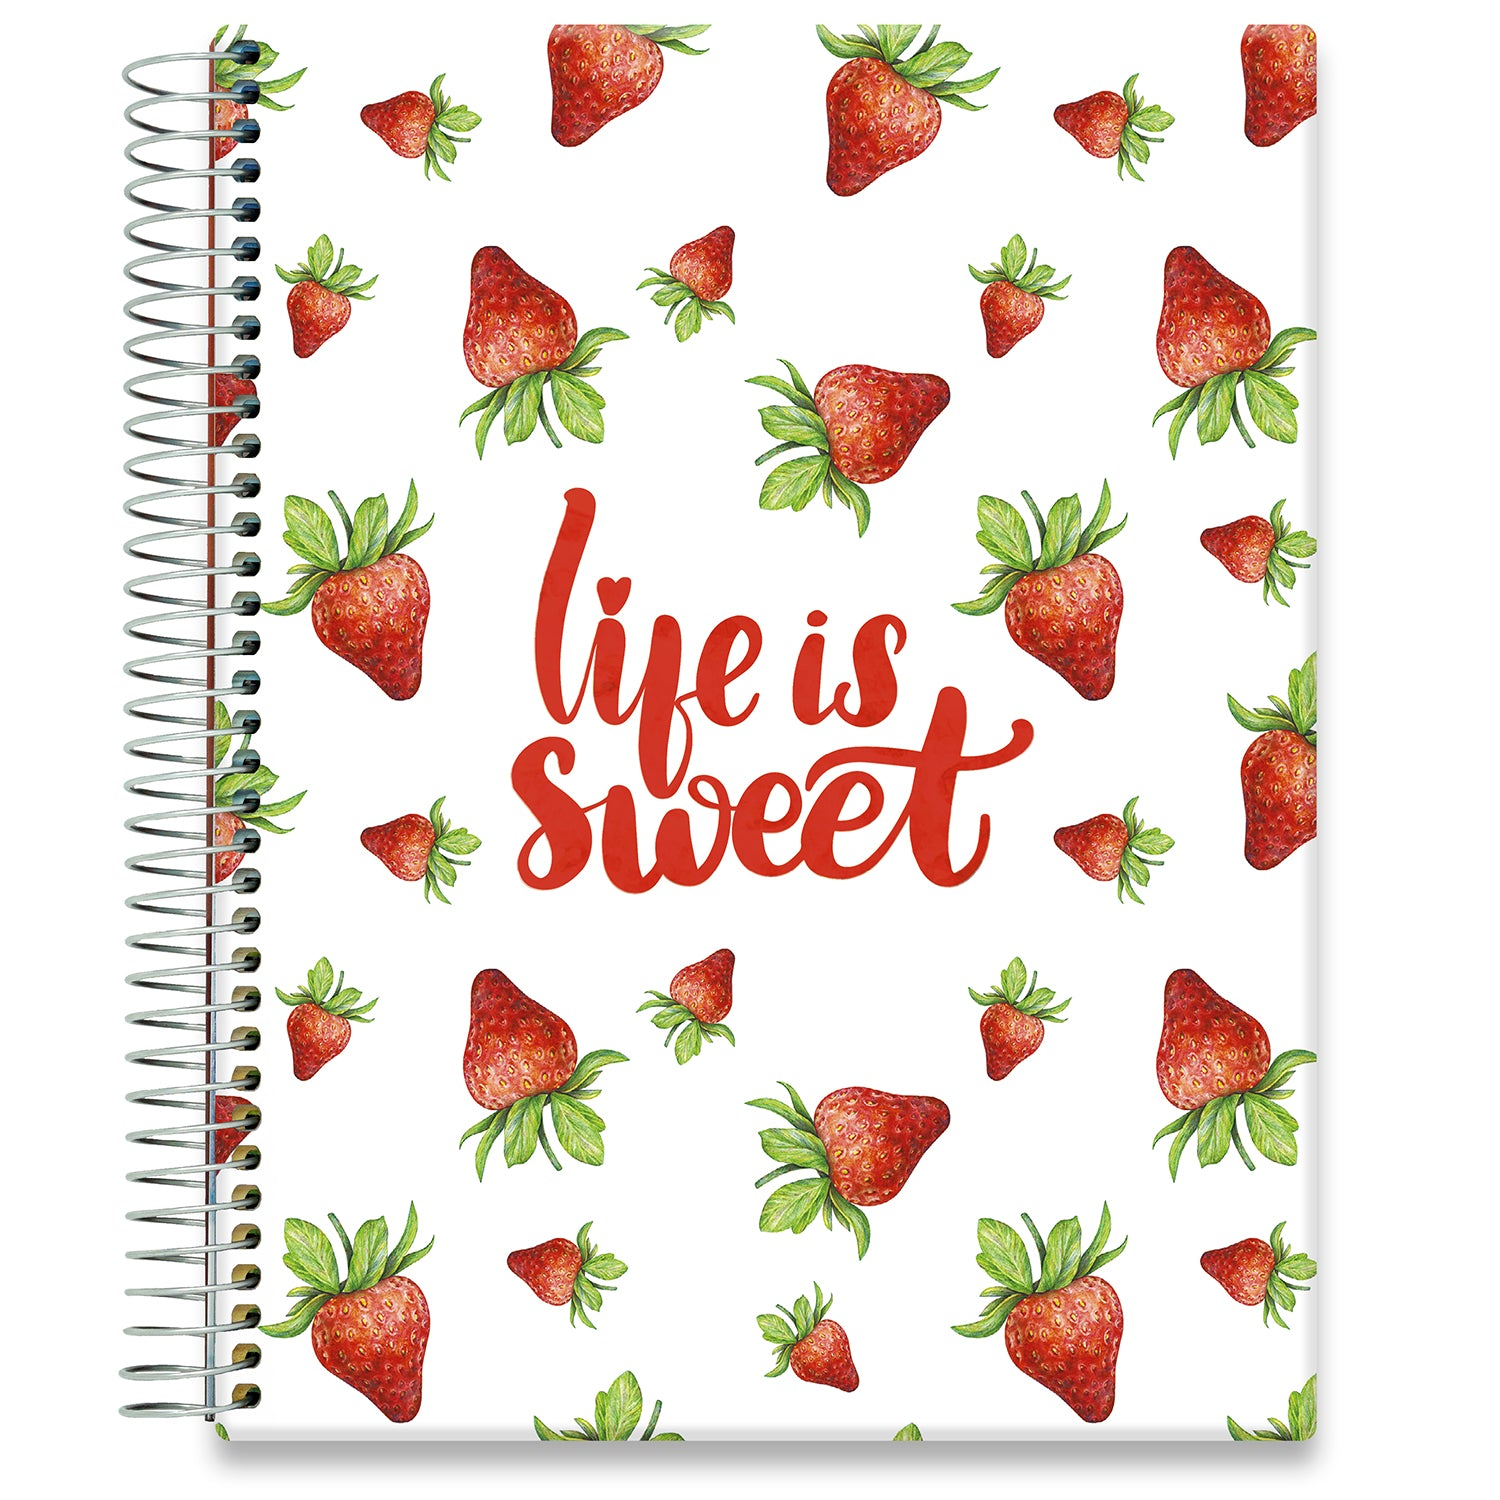 Planner 2021-2022 • April 2021 to June 2022 Academic Year • 8.5x11 Hardcover • Life is Sweet